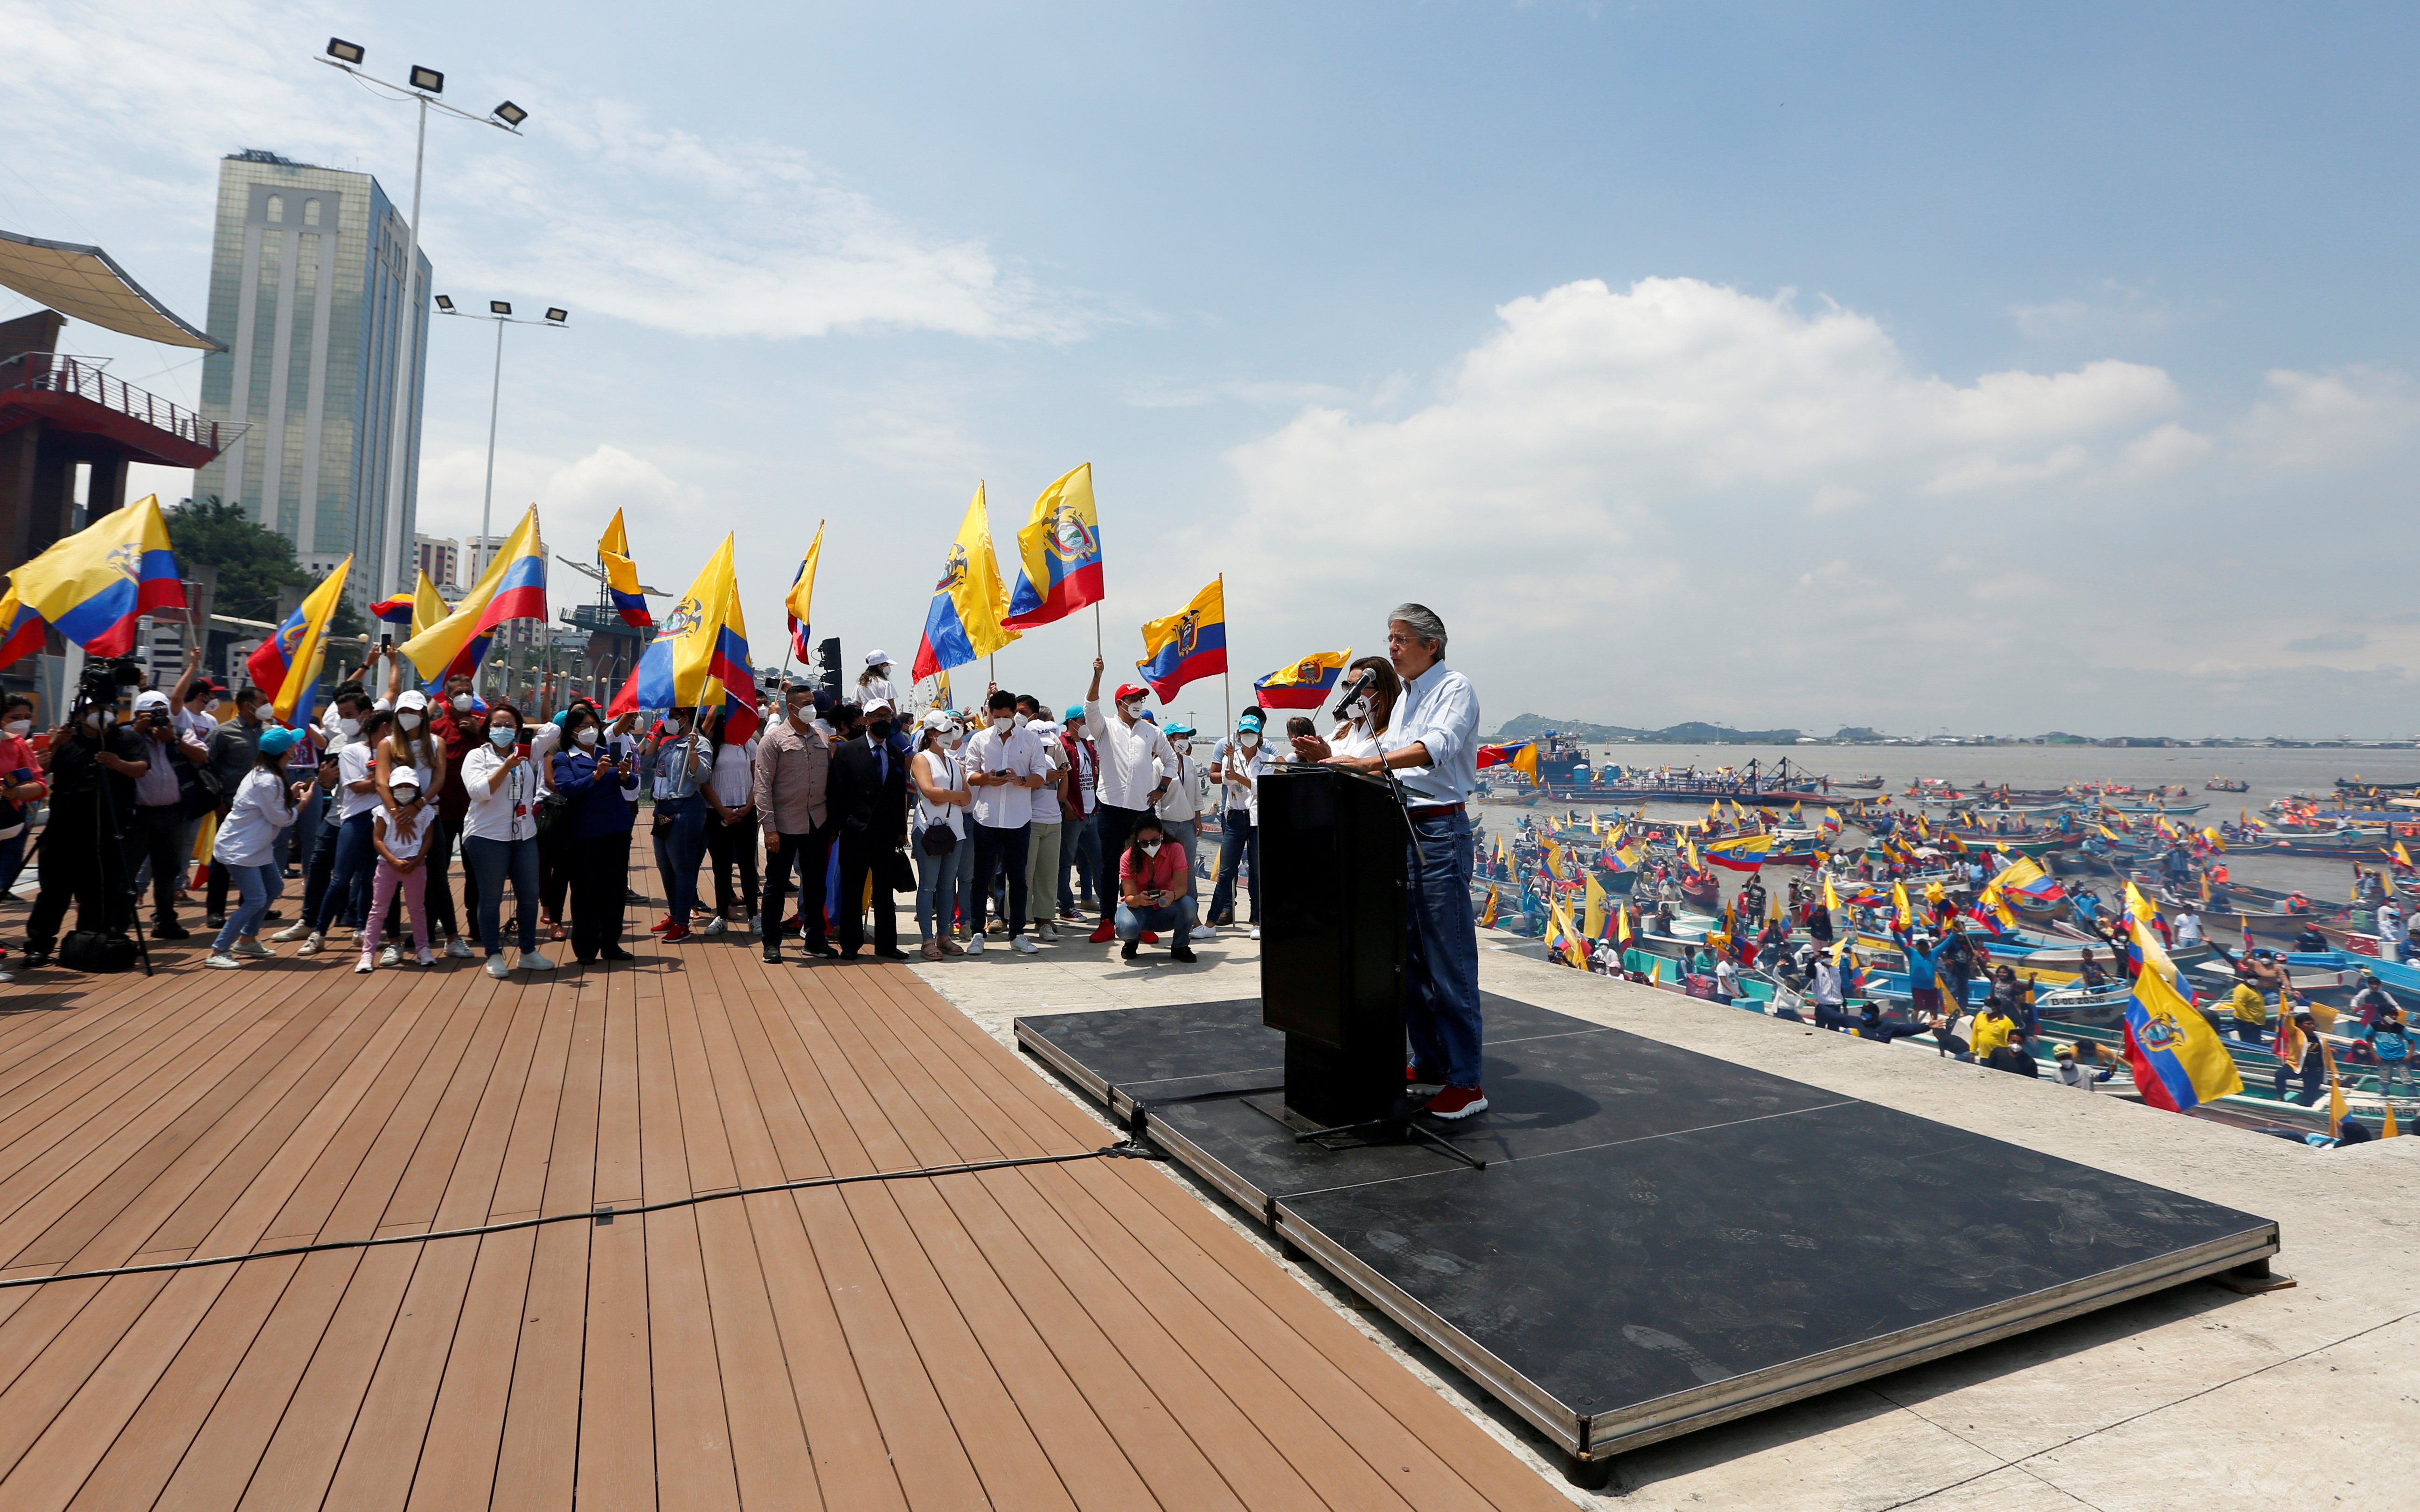 Ecuador's presidential candidate Guillermo Lasso speaks during a closing campaign rally, in Guayaquil, Ecuador April 8, 2021. REUTERS/Santiago Arcos/File Photo